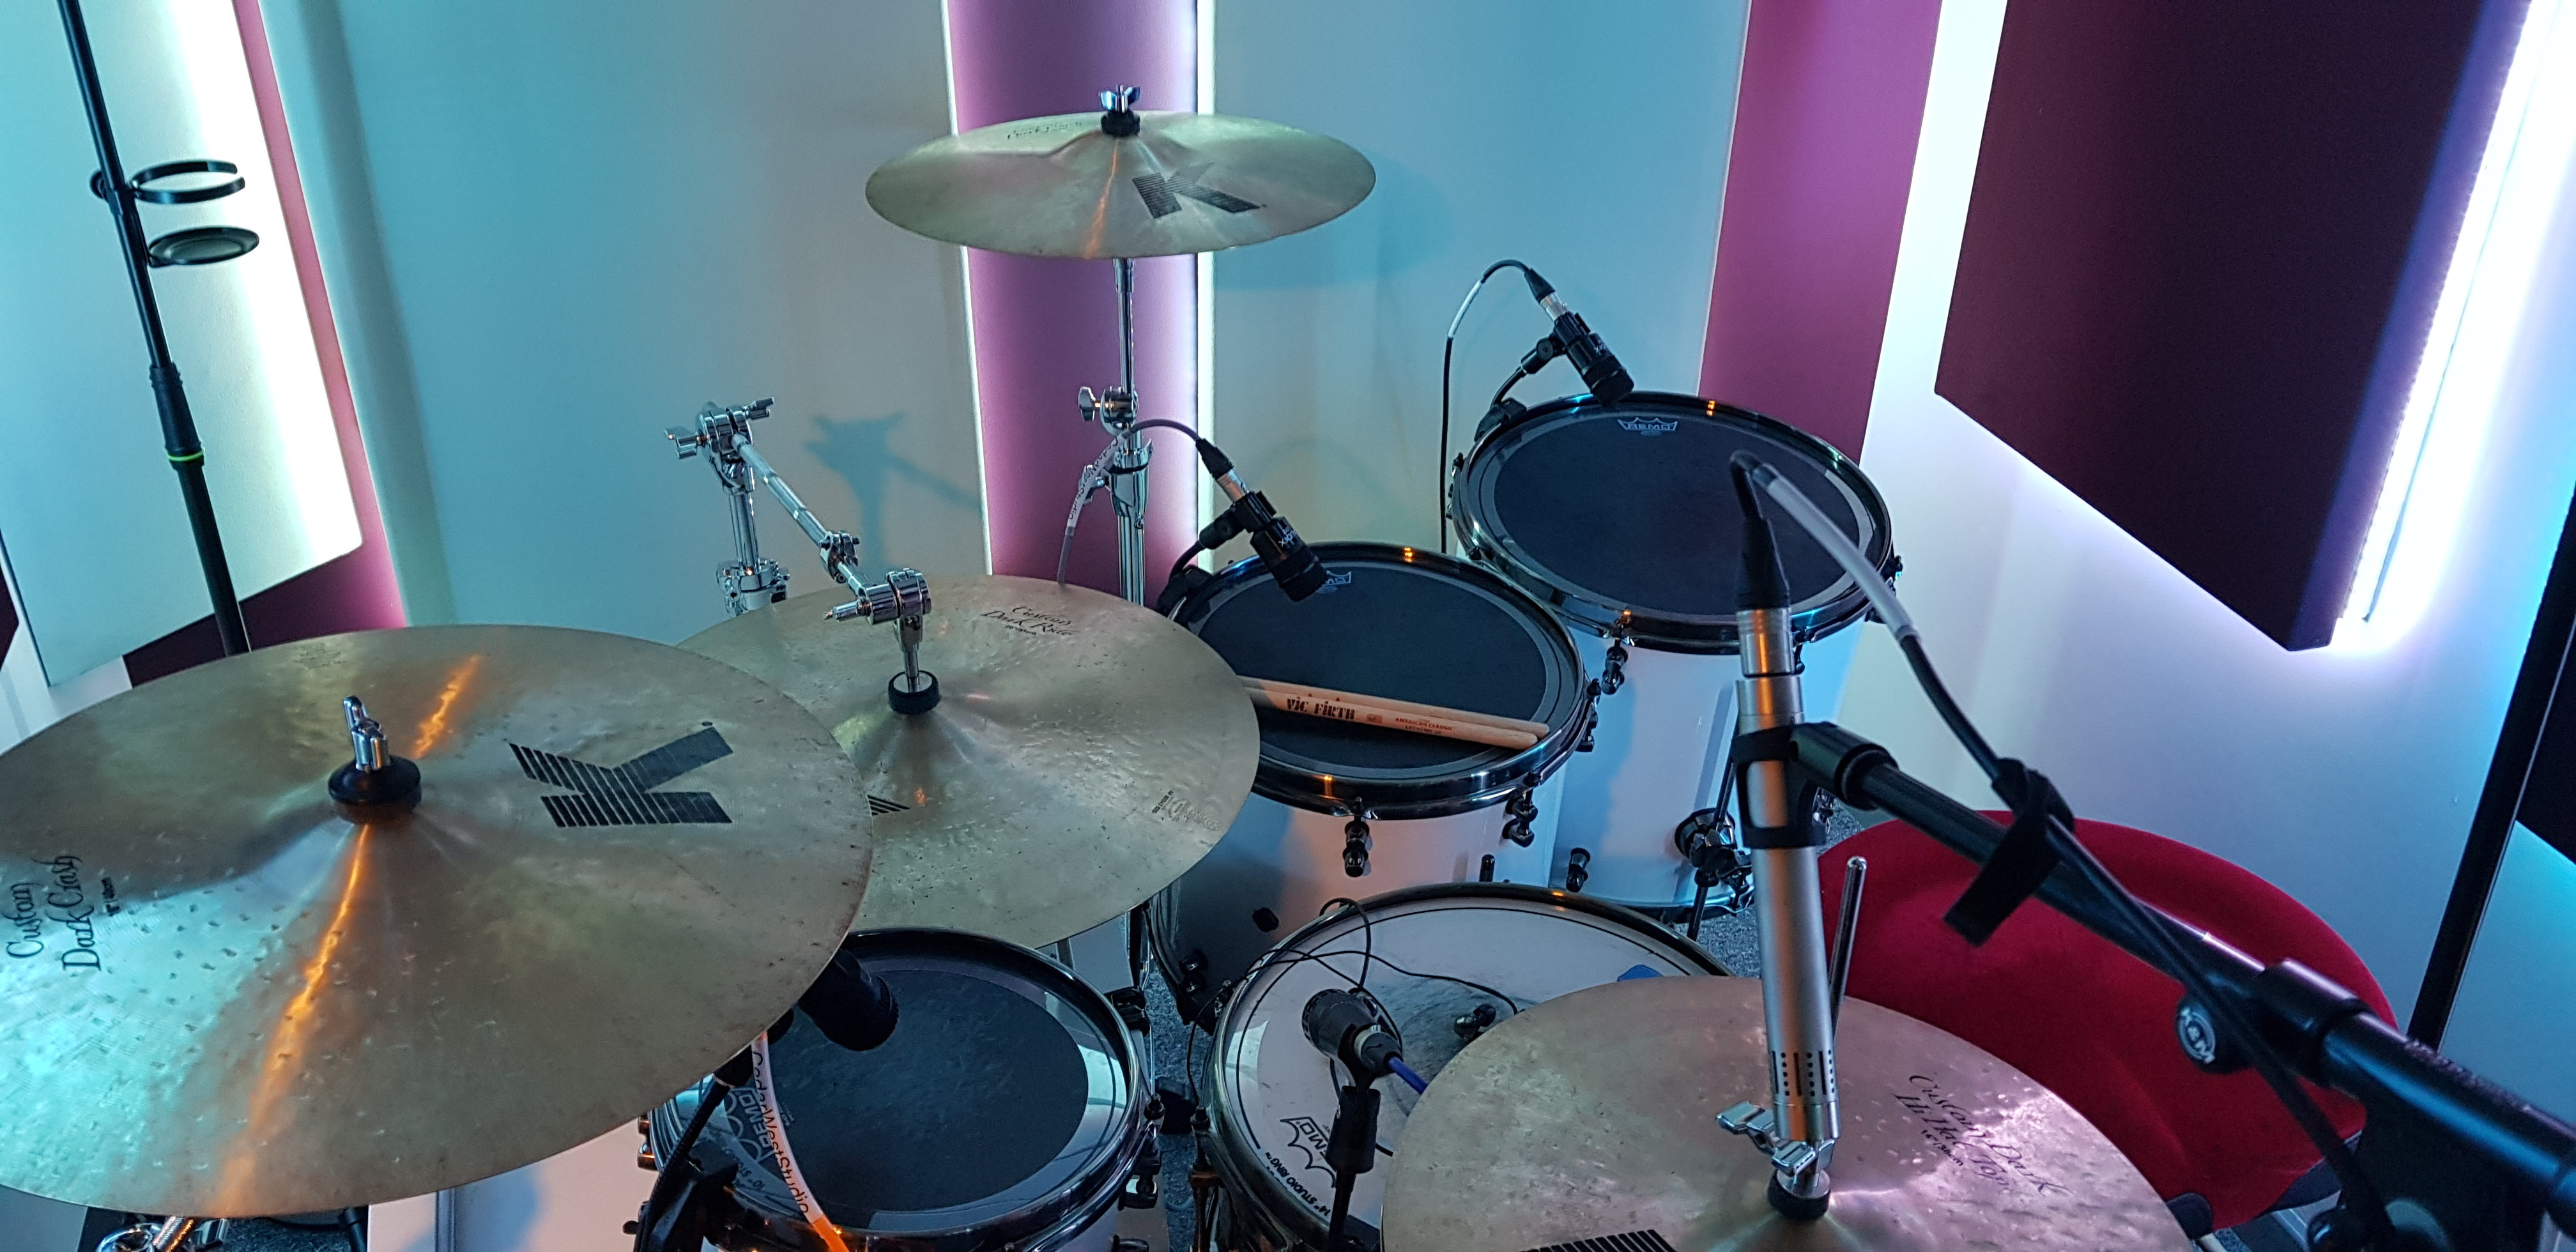 Drum Kit Set Up